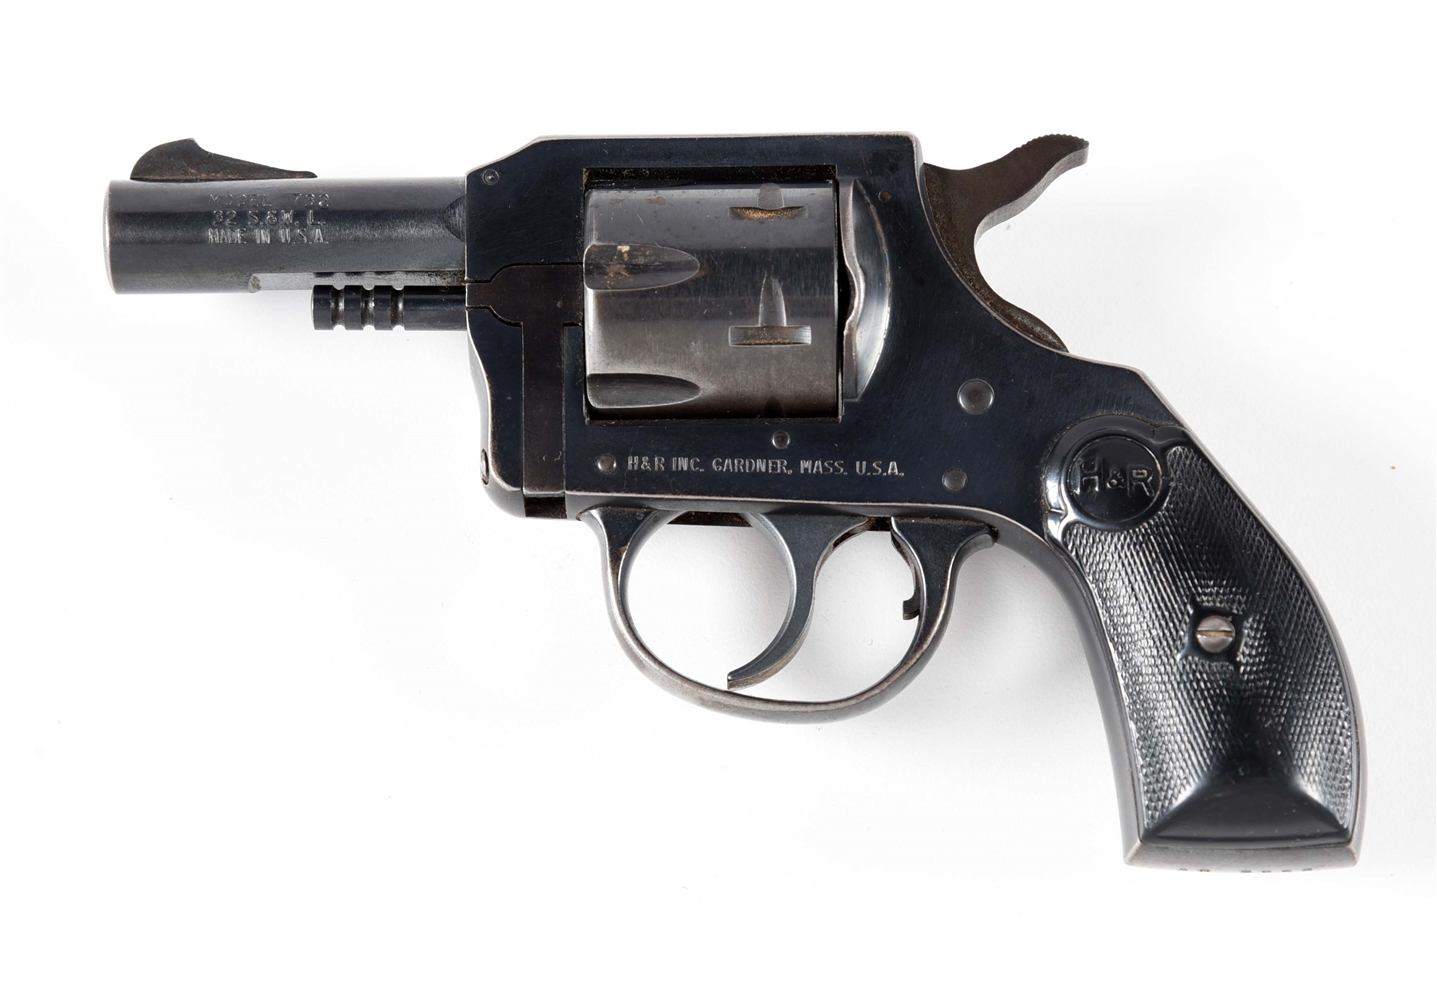 (M) HARRINGTON AND RICHARDSON MODEL 732 DOUBLE ACTION .32 REVOLVER.